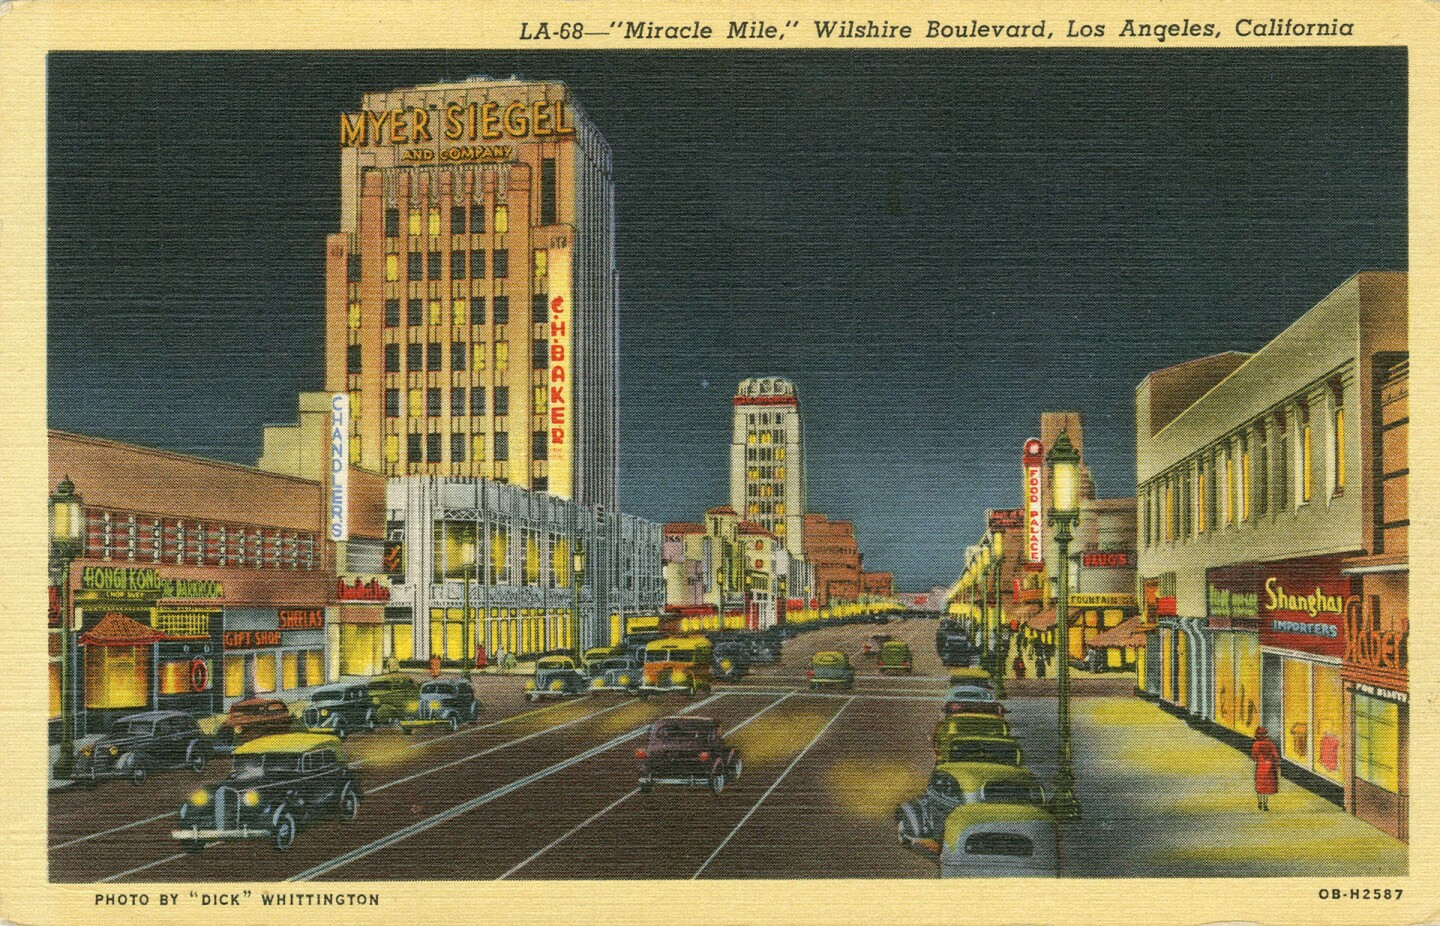 1940 postcard of Wilshire Boulevard's Miracle Mile district. Courtesy of the Werner von Boltenstern Postcard Collection, Department of Archives and Special Collections, Loyola Marymount University Library.